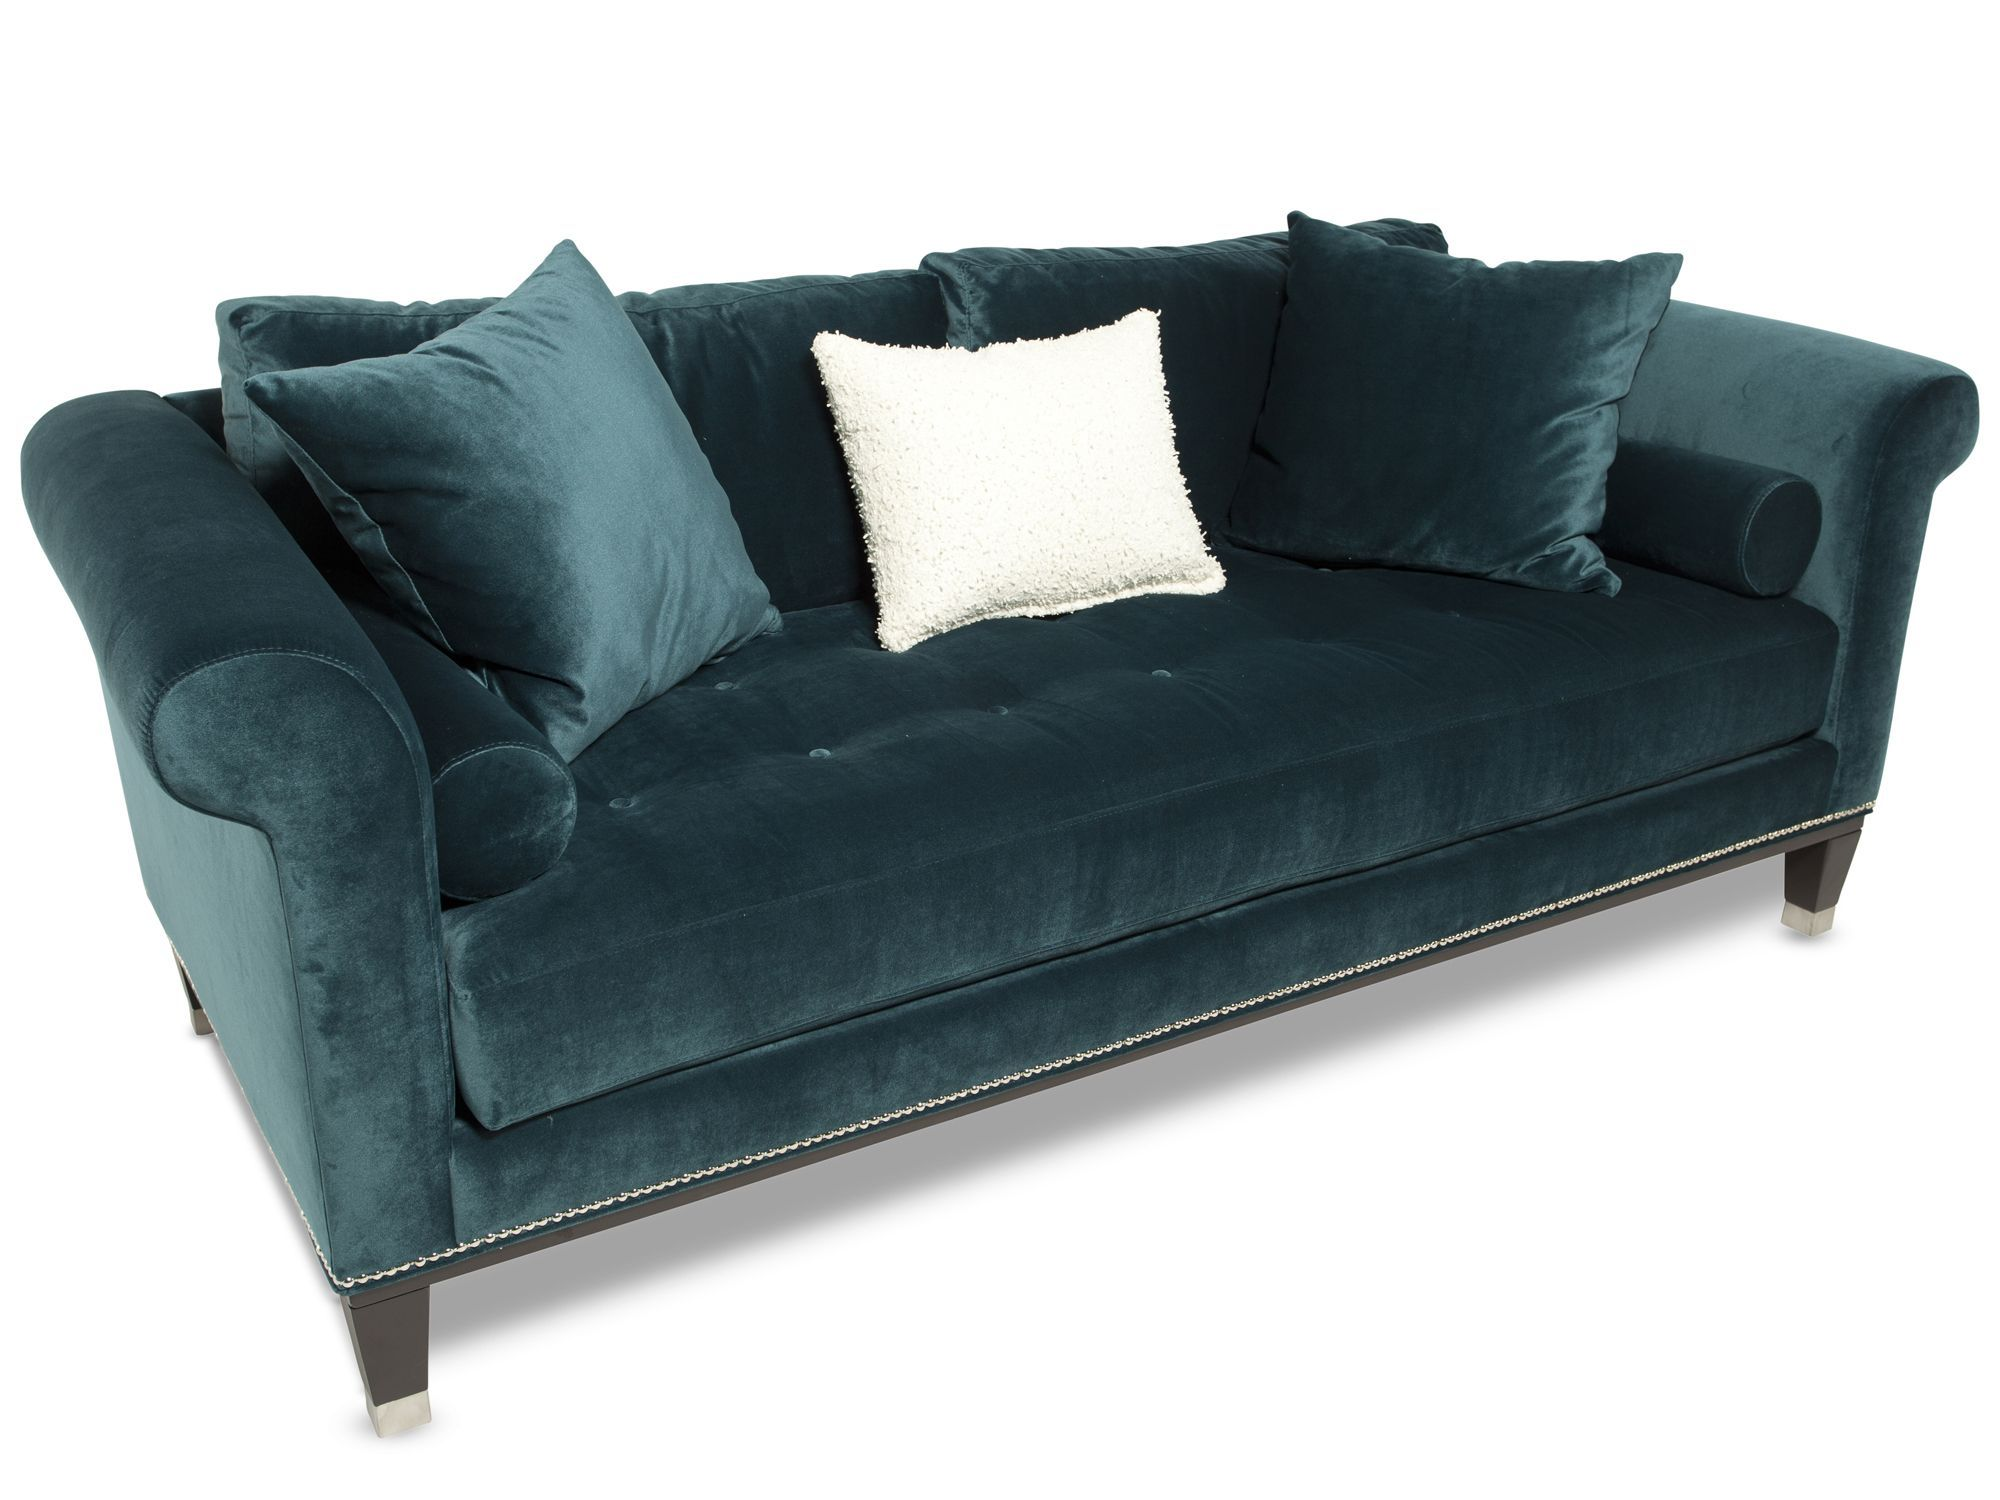 Teal Living Room Chair Jonathan Louis Turner Sofa Mystere Teal Living Room